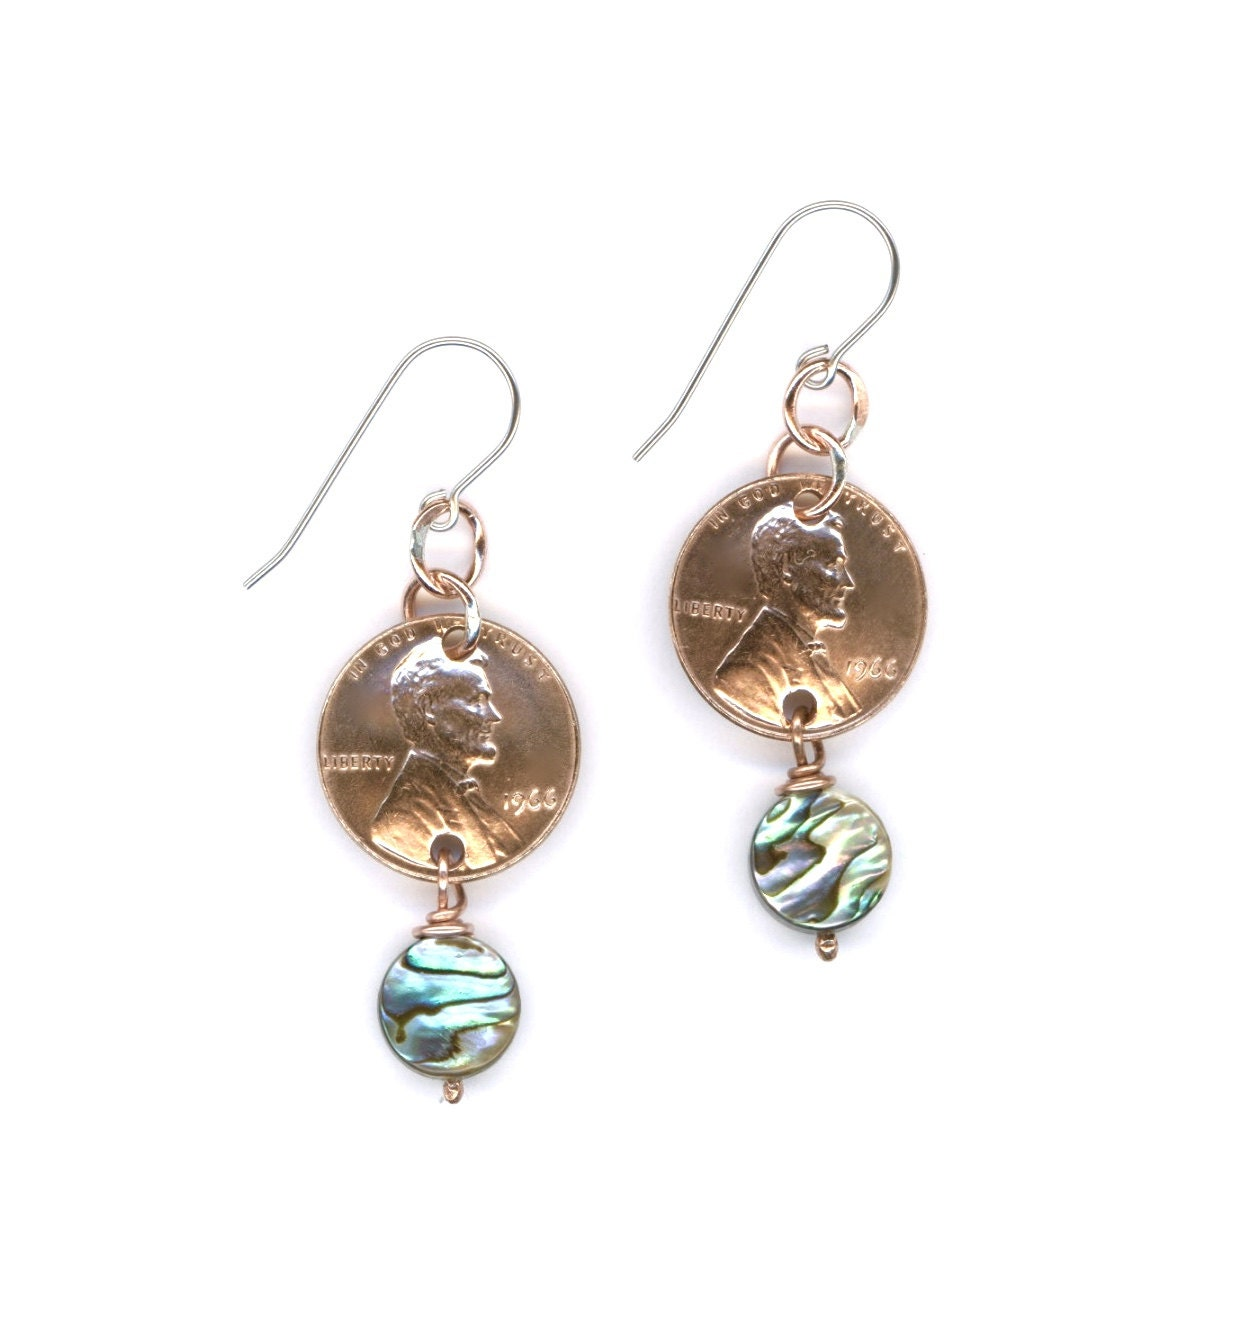 50th Birthday Gift Jewelry 1966 Penny Earrings 50th